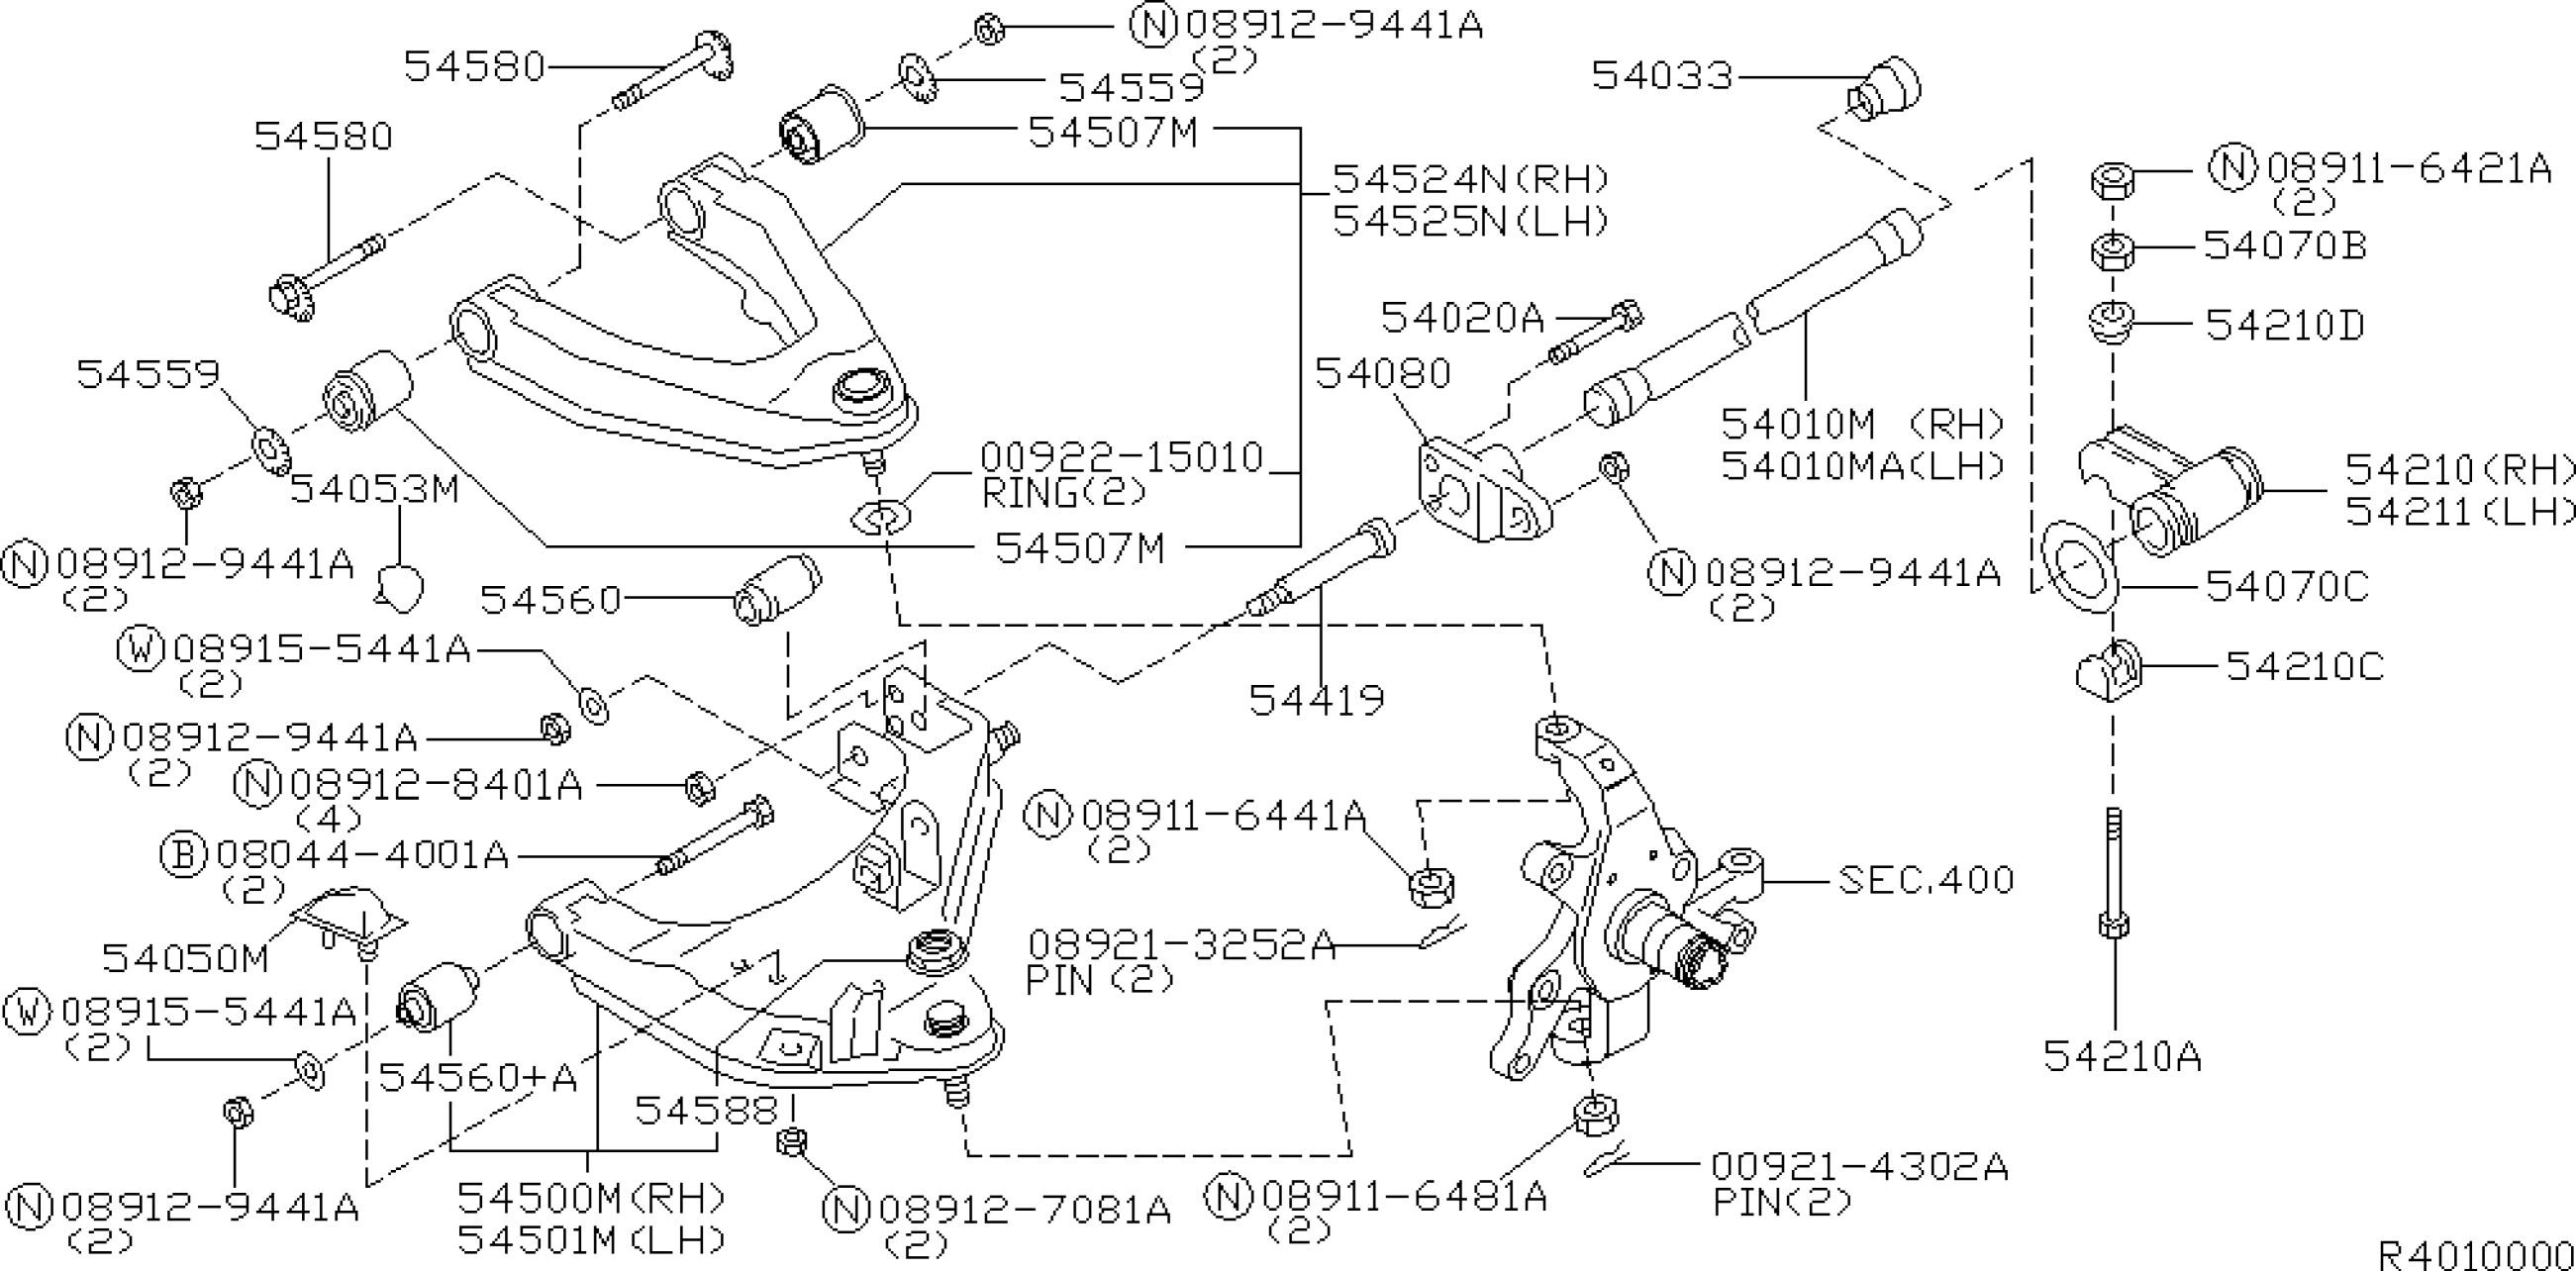 Nissan Chassis Diagram Great Design Of Wiring 2002 Mazda Tribute Engine 2005 Pathfinder Front Suspension Circuit Vehicle